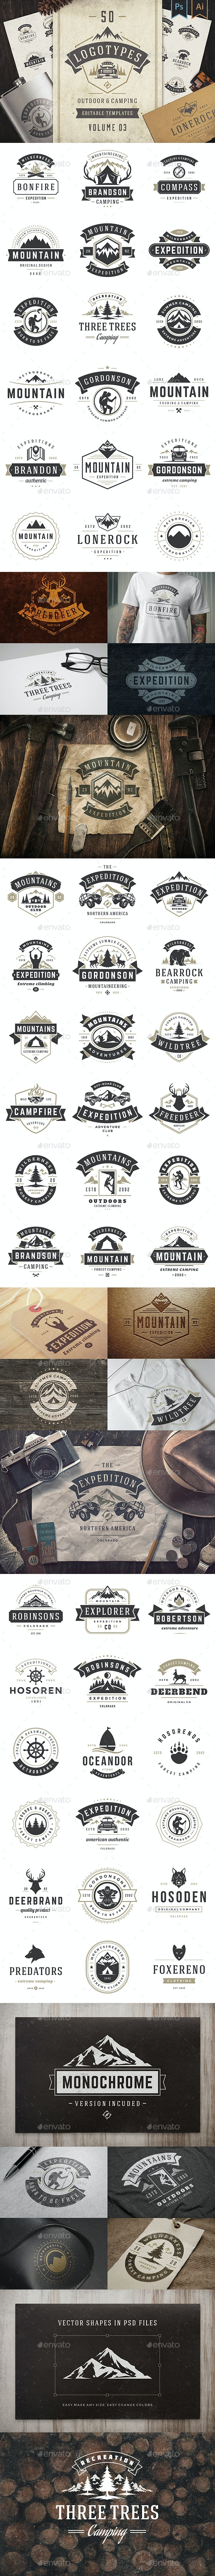 50 Outdoor Logos and Badges - Badges & Stickers Web Elements